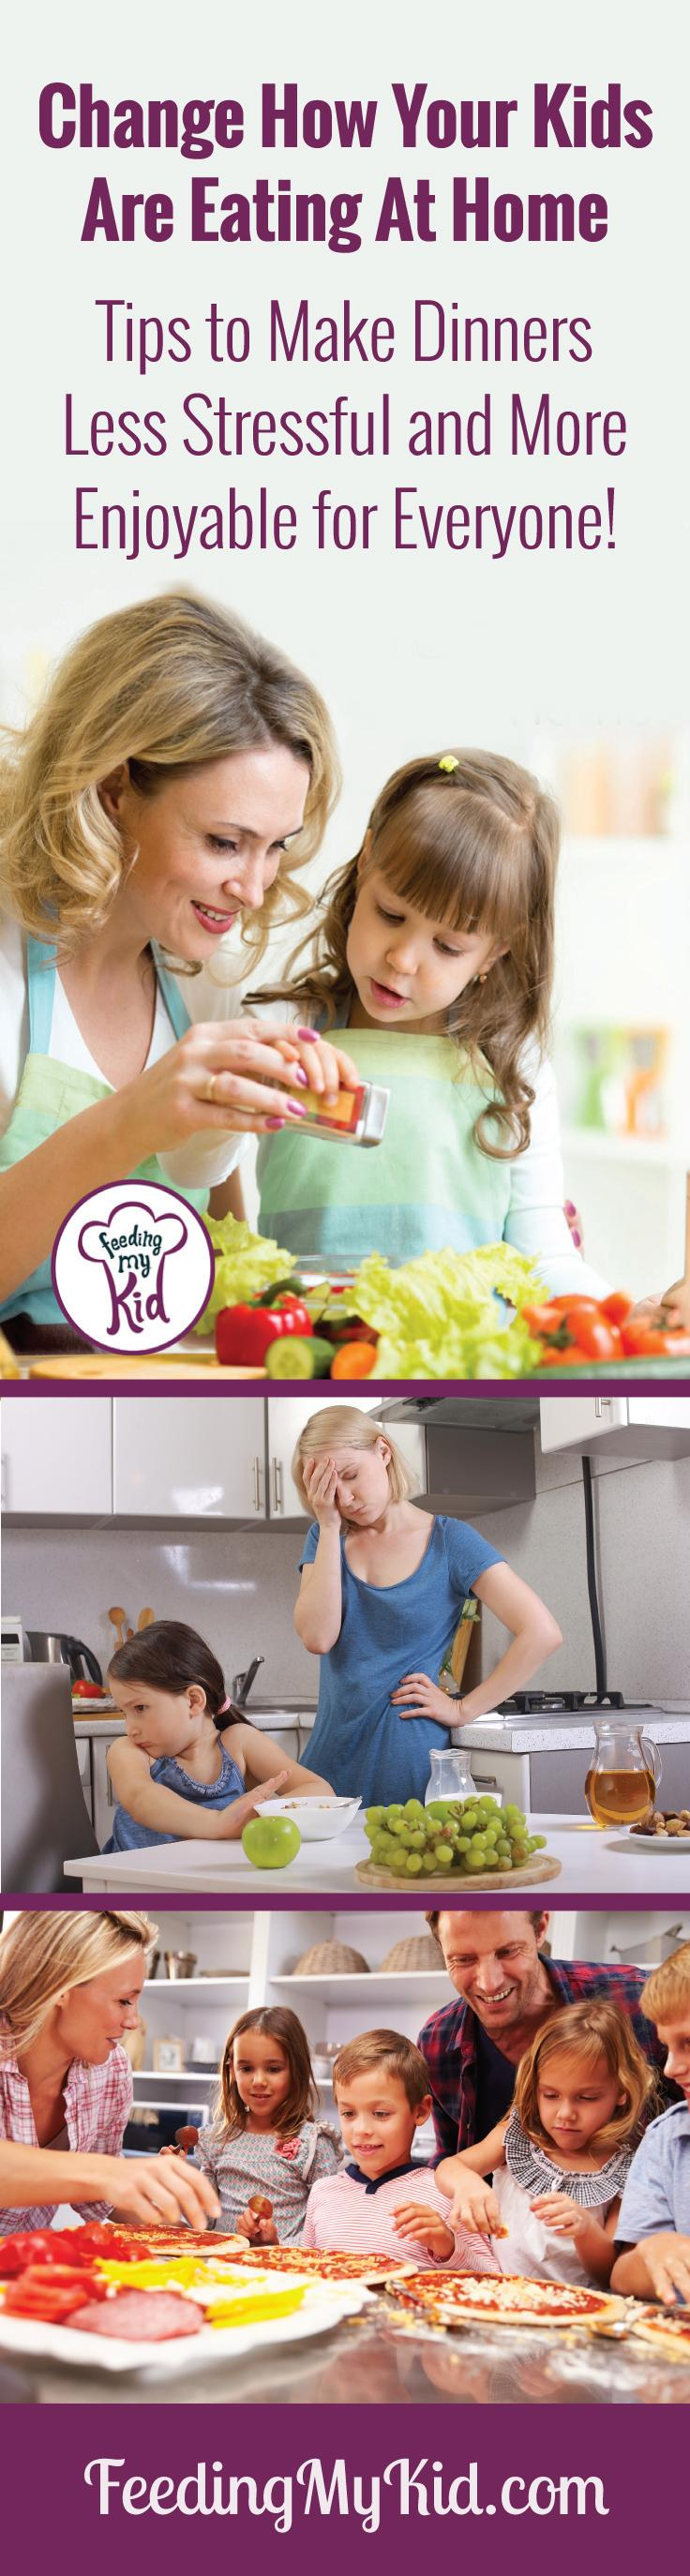 Change How Your Kids Are Eating at Home